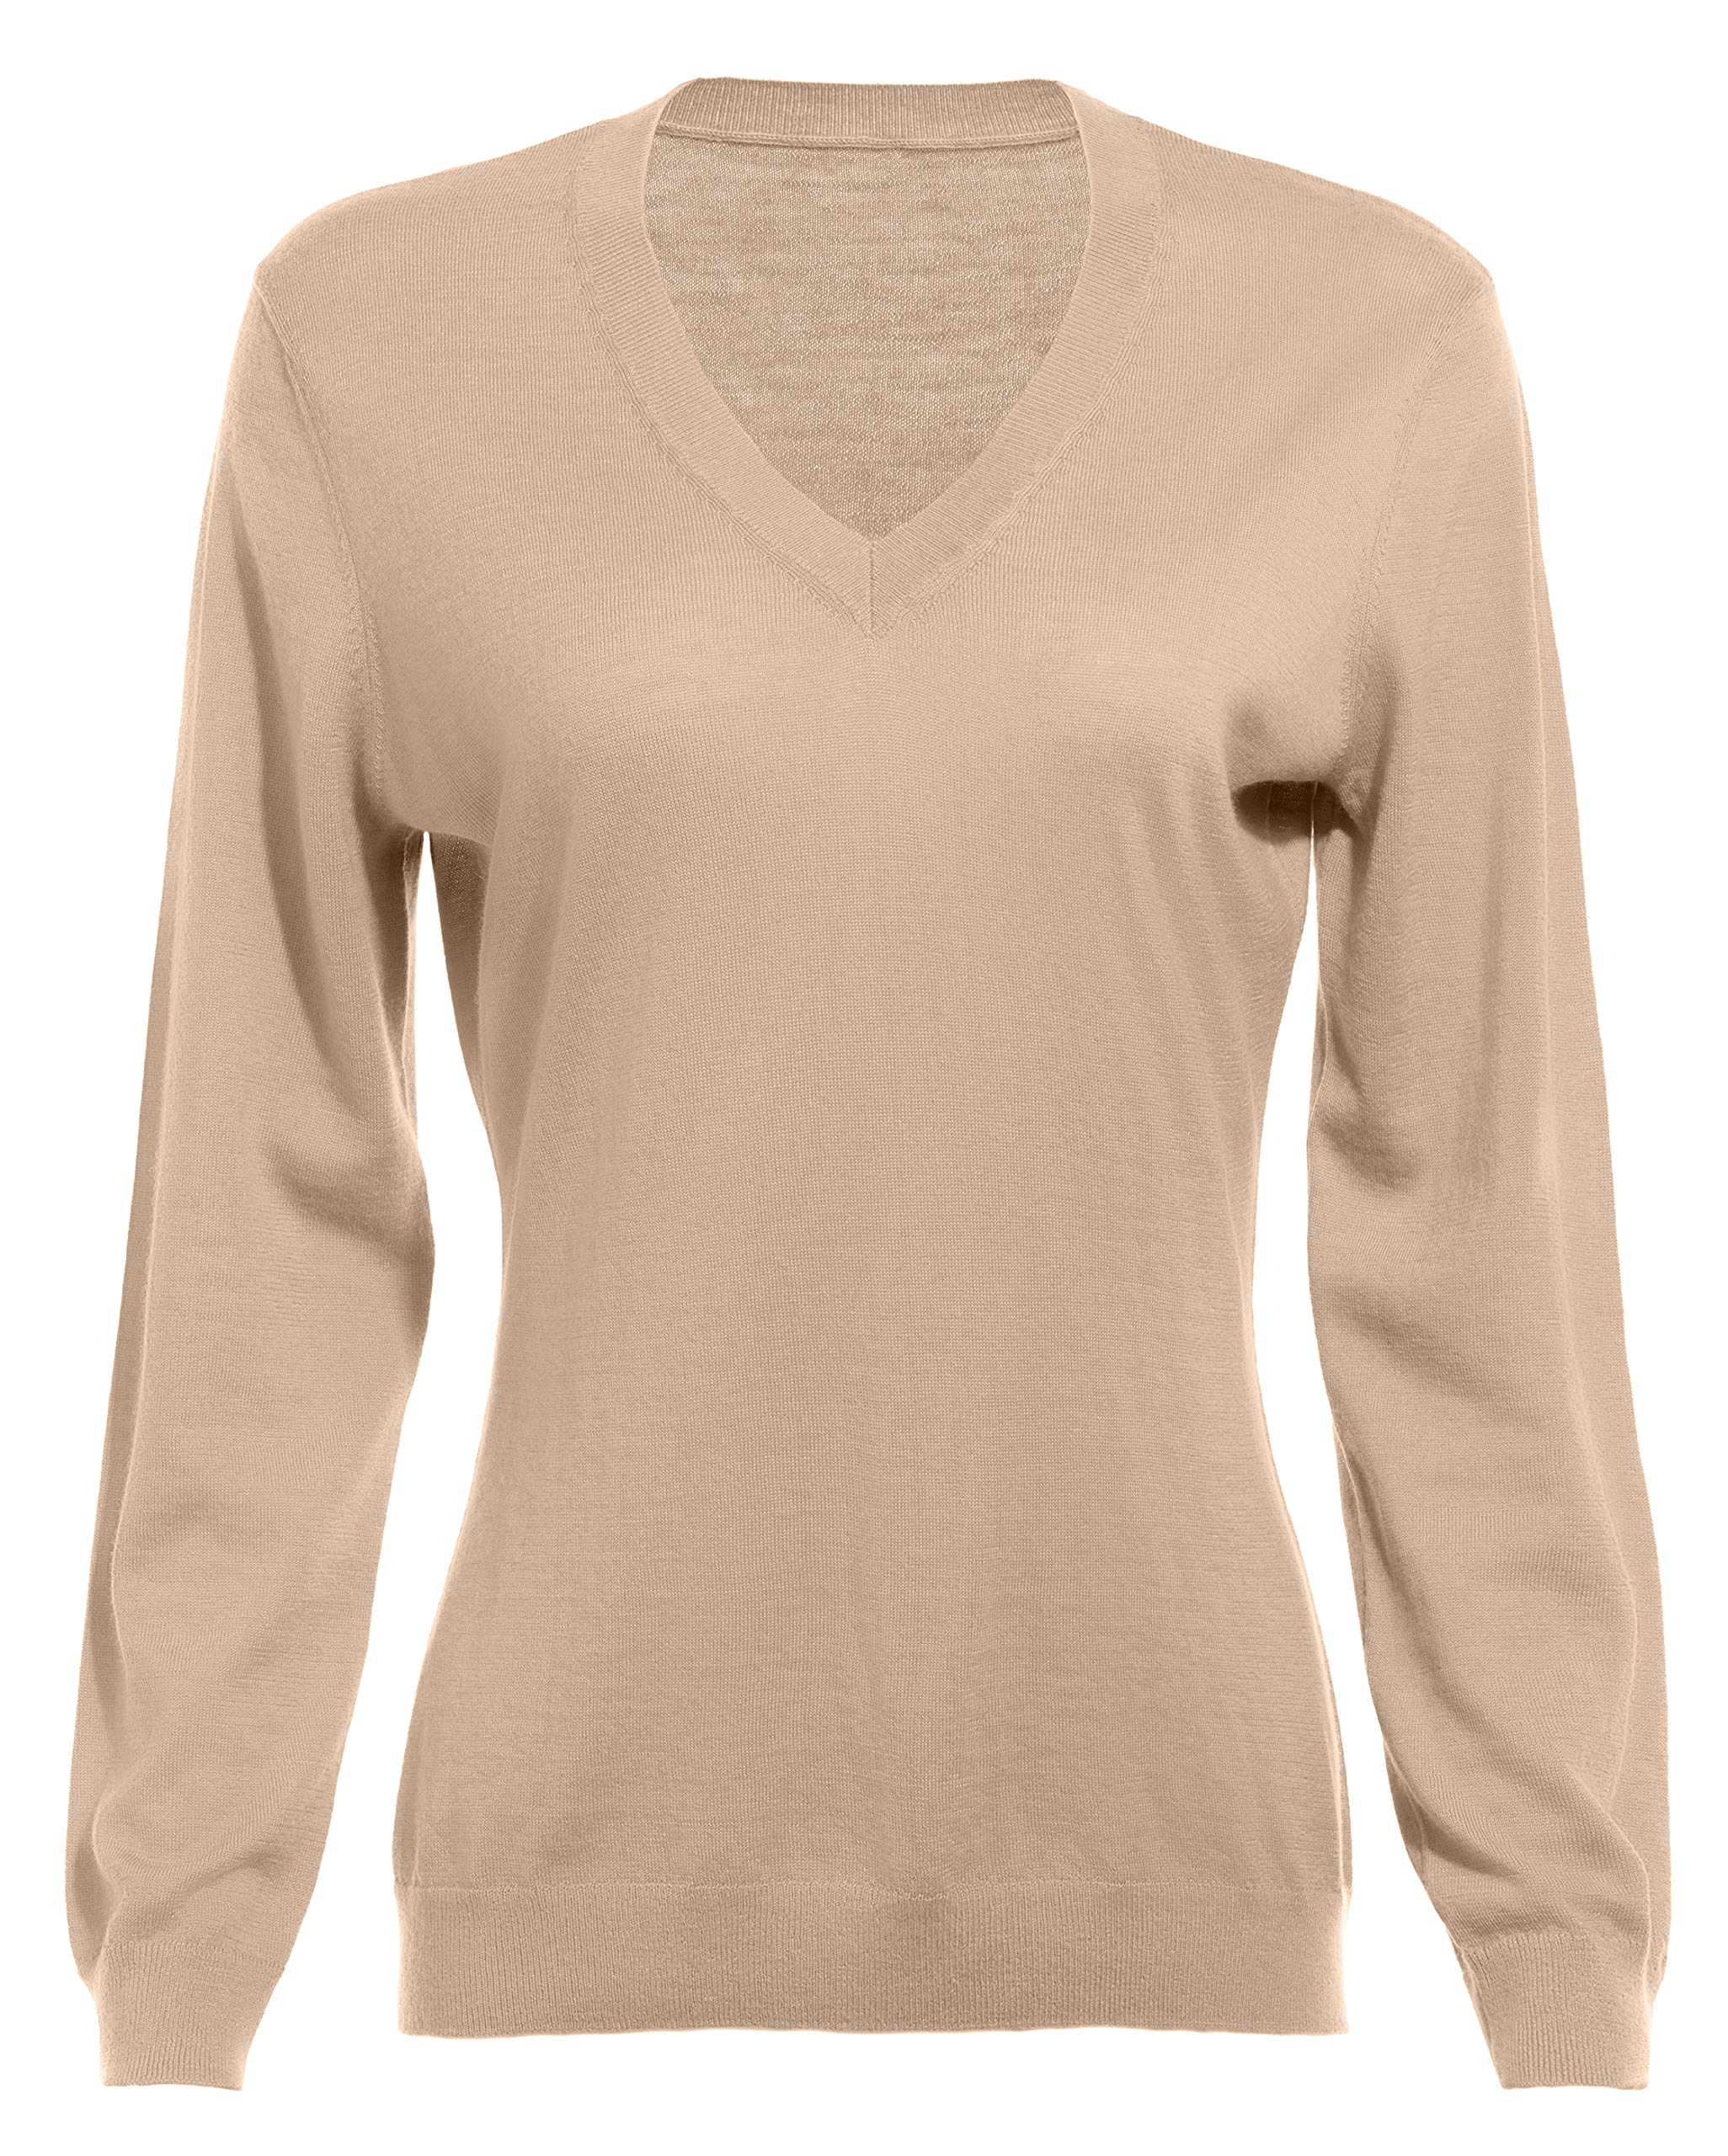 Women's Sweaters 100% Pure Original Cashmere V Neck Sweater Firm Fitting Tops